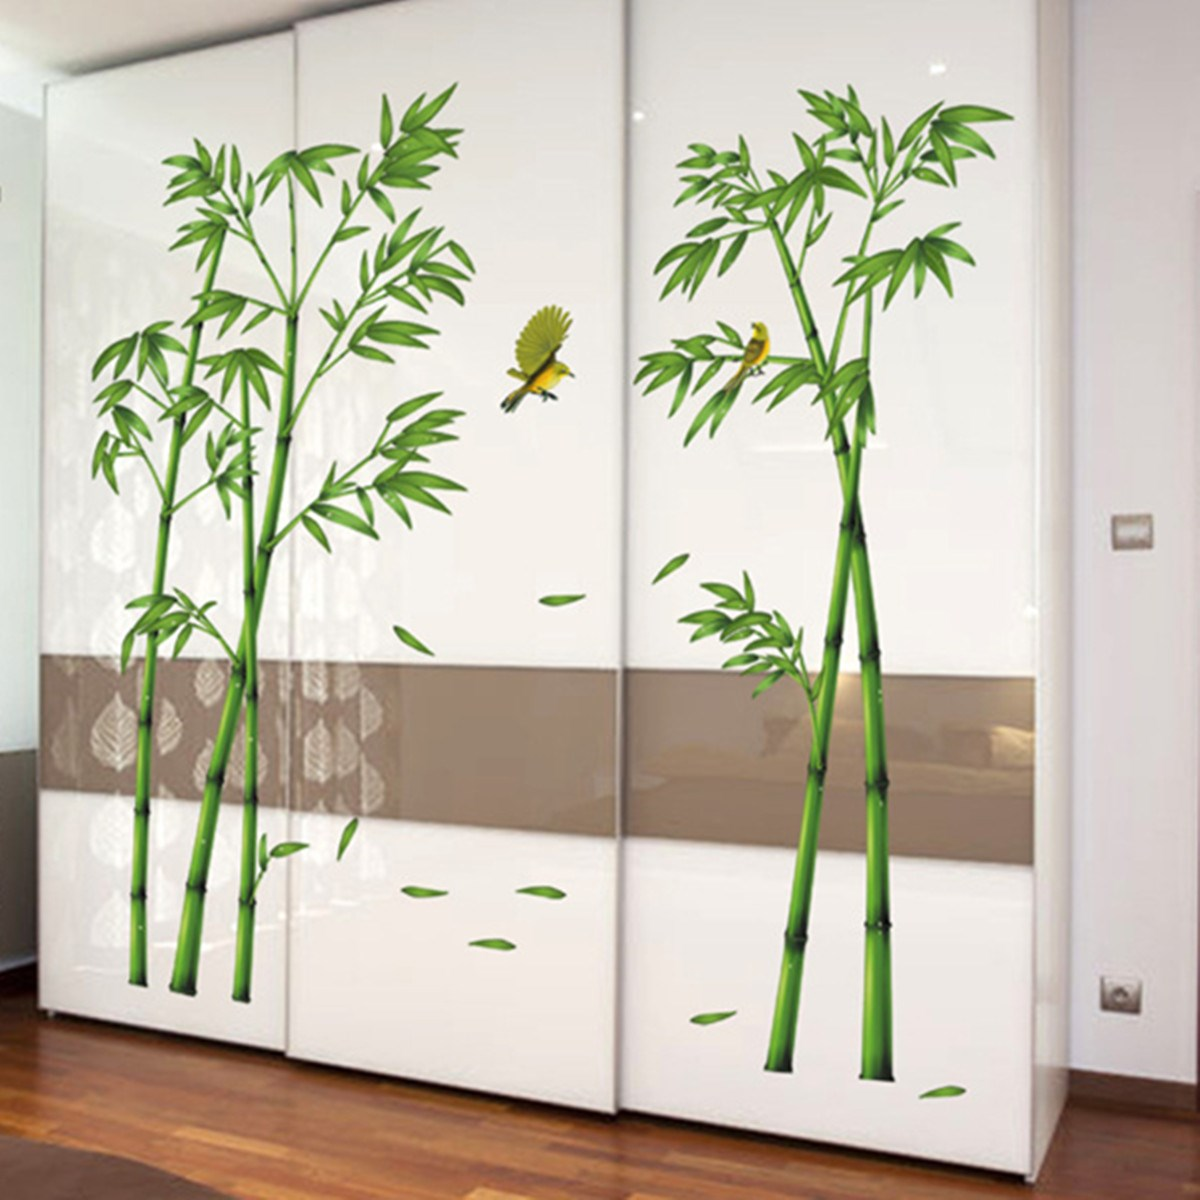 2Pcs 3D Wall Stickers Large Size Bamboo Birds Tree DIY Vinyl Removable  Decals Home Living Room Part 28